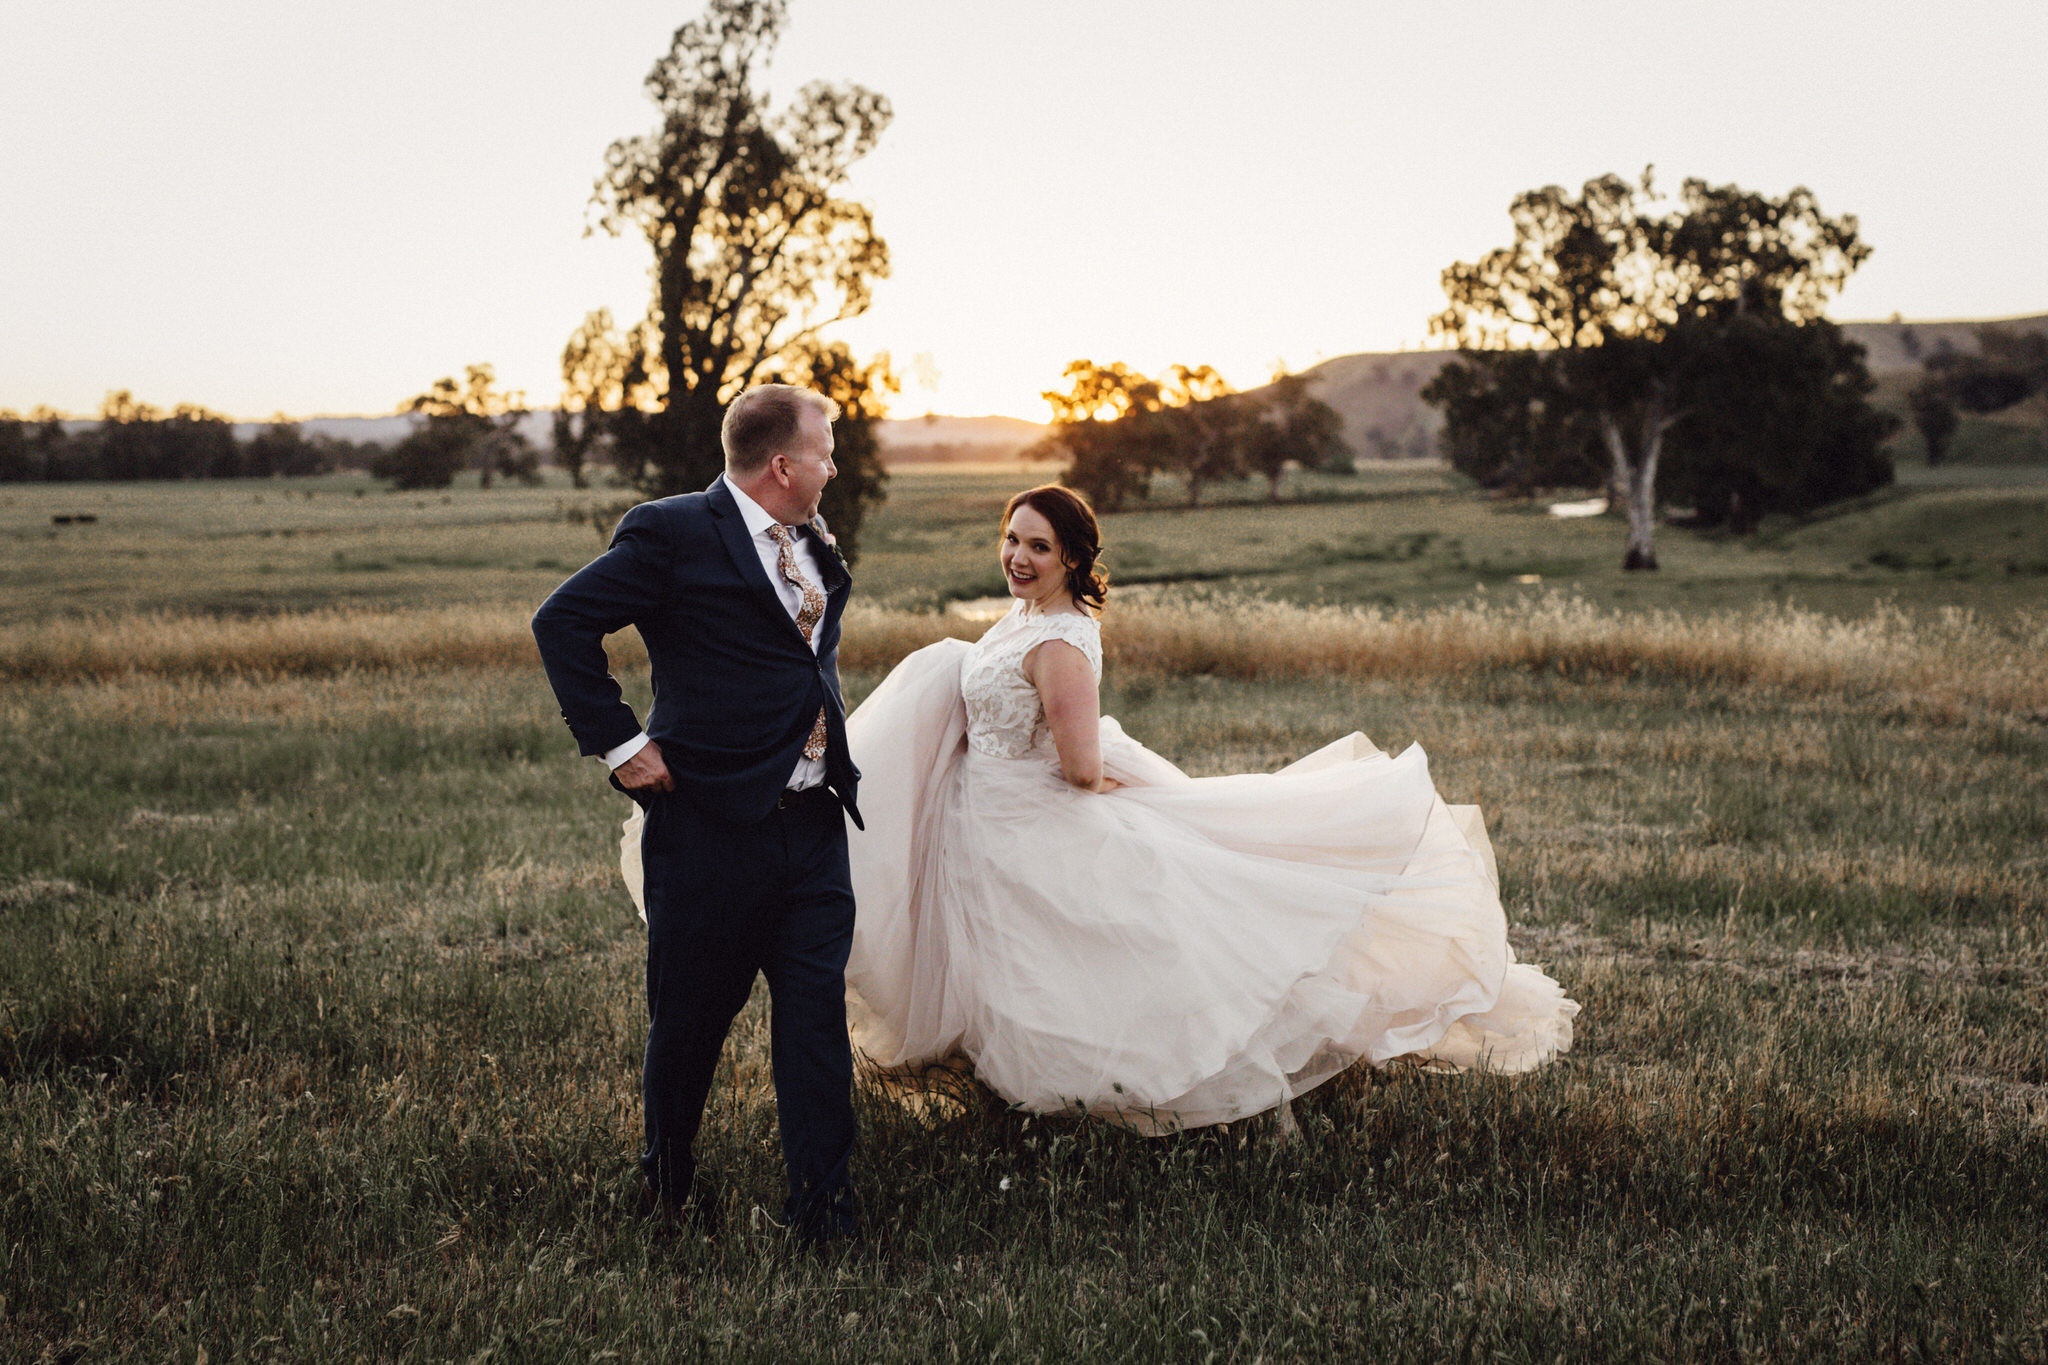 kimo estate, country, nsw, outback wedding, sunshine coast wedding photographer, brisbane wedding photography, byron bay, peonies, homestead, inspiration, boho, soft, romantic, outdoors